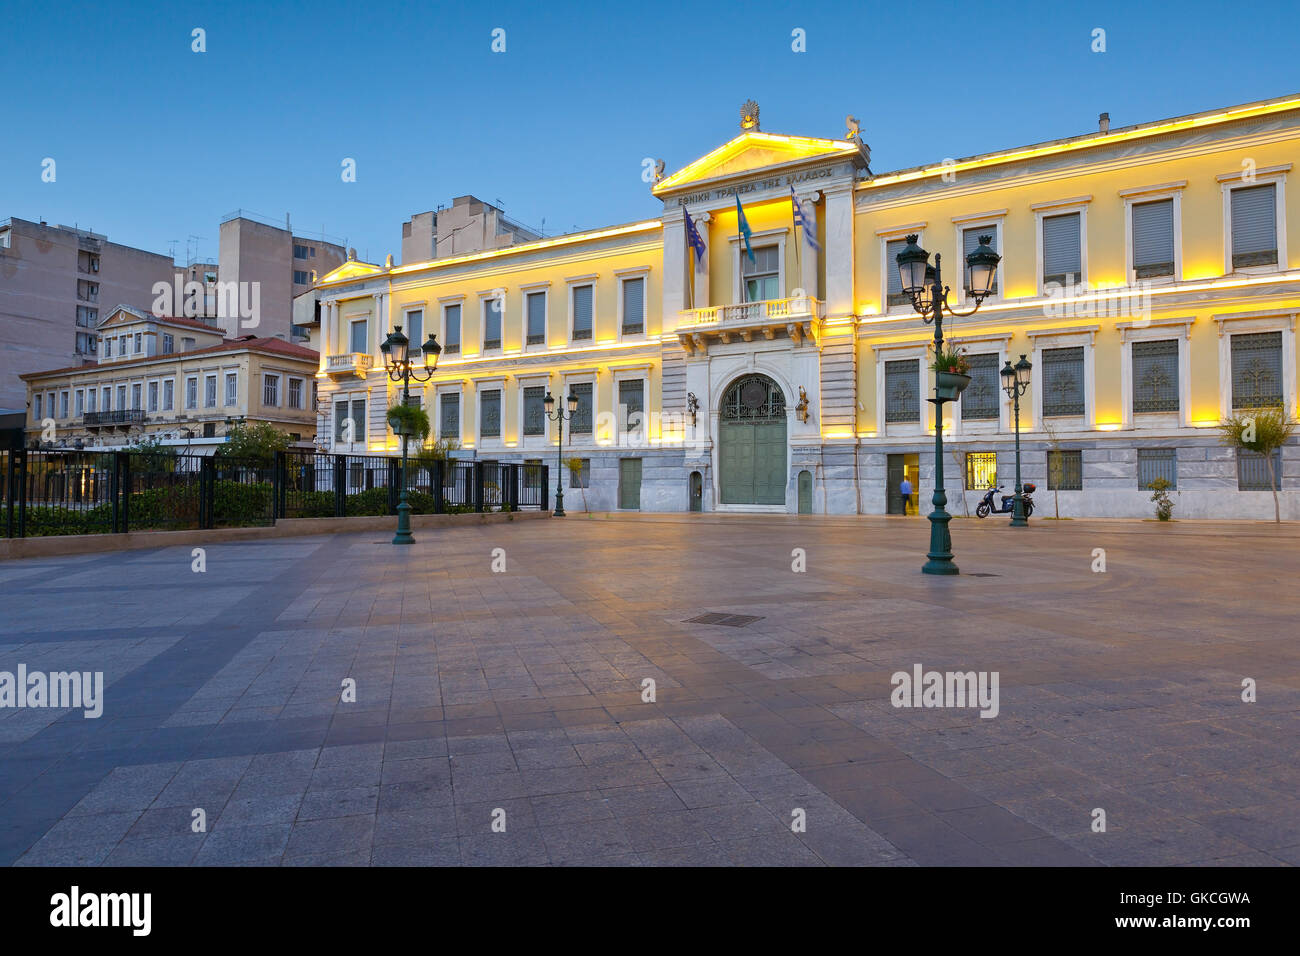 Building of the National Bank of Greece in Kotzia square, Athens. - Stock Image